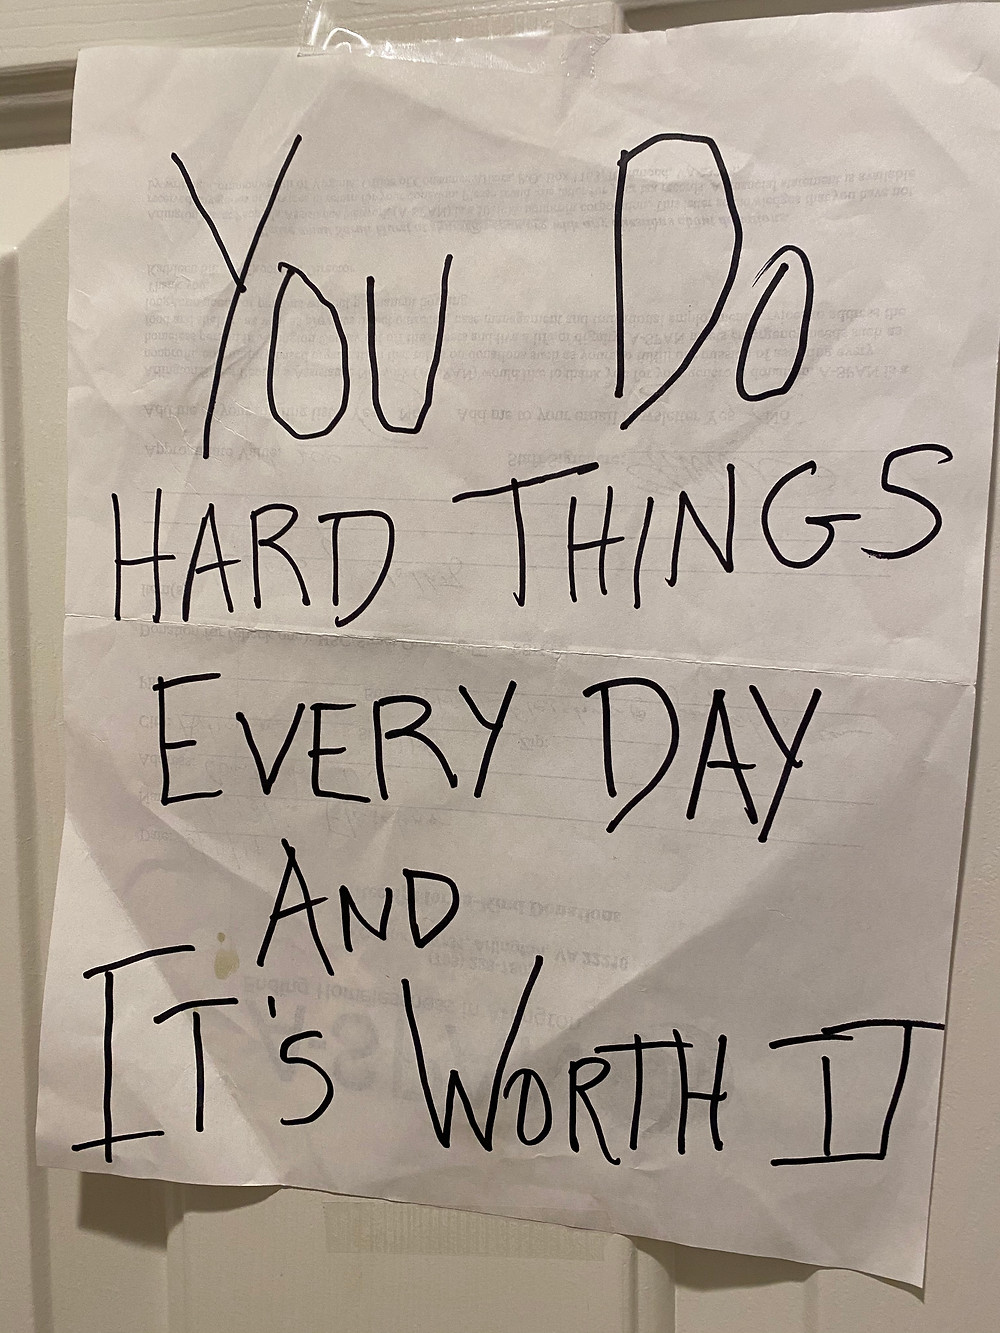 """PD: A piece of paper taped to a door. Handwritten on the paper in black pen is the phrase: """"You do hard things every day and it's worth it"""""""